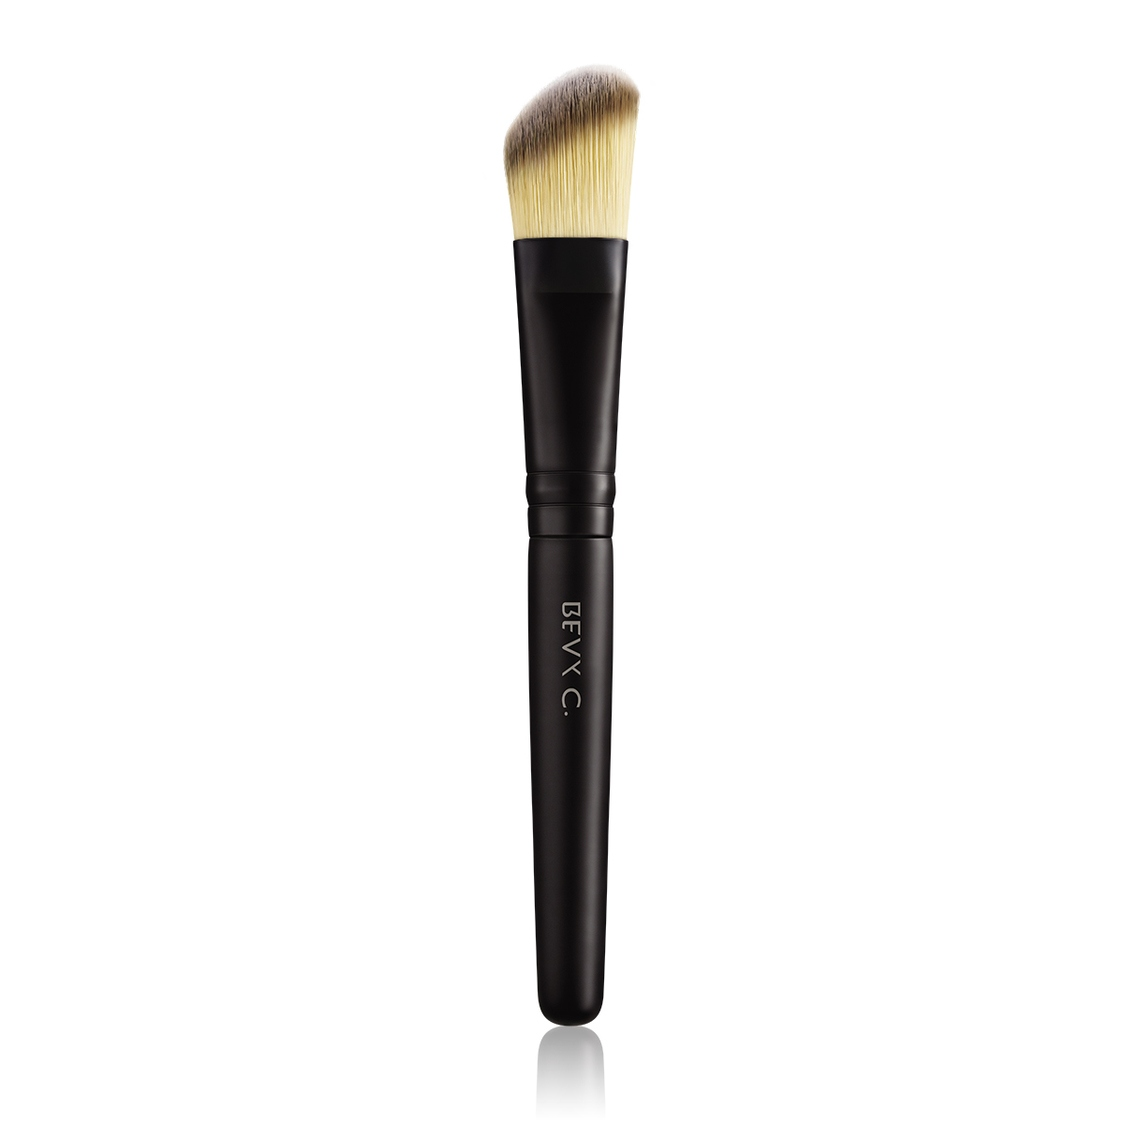 Lumisoft Perfection Foundation Brush